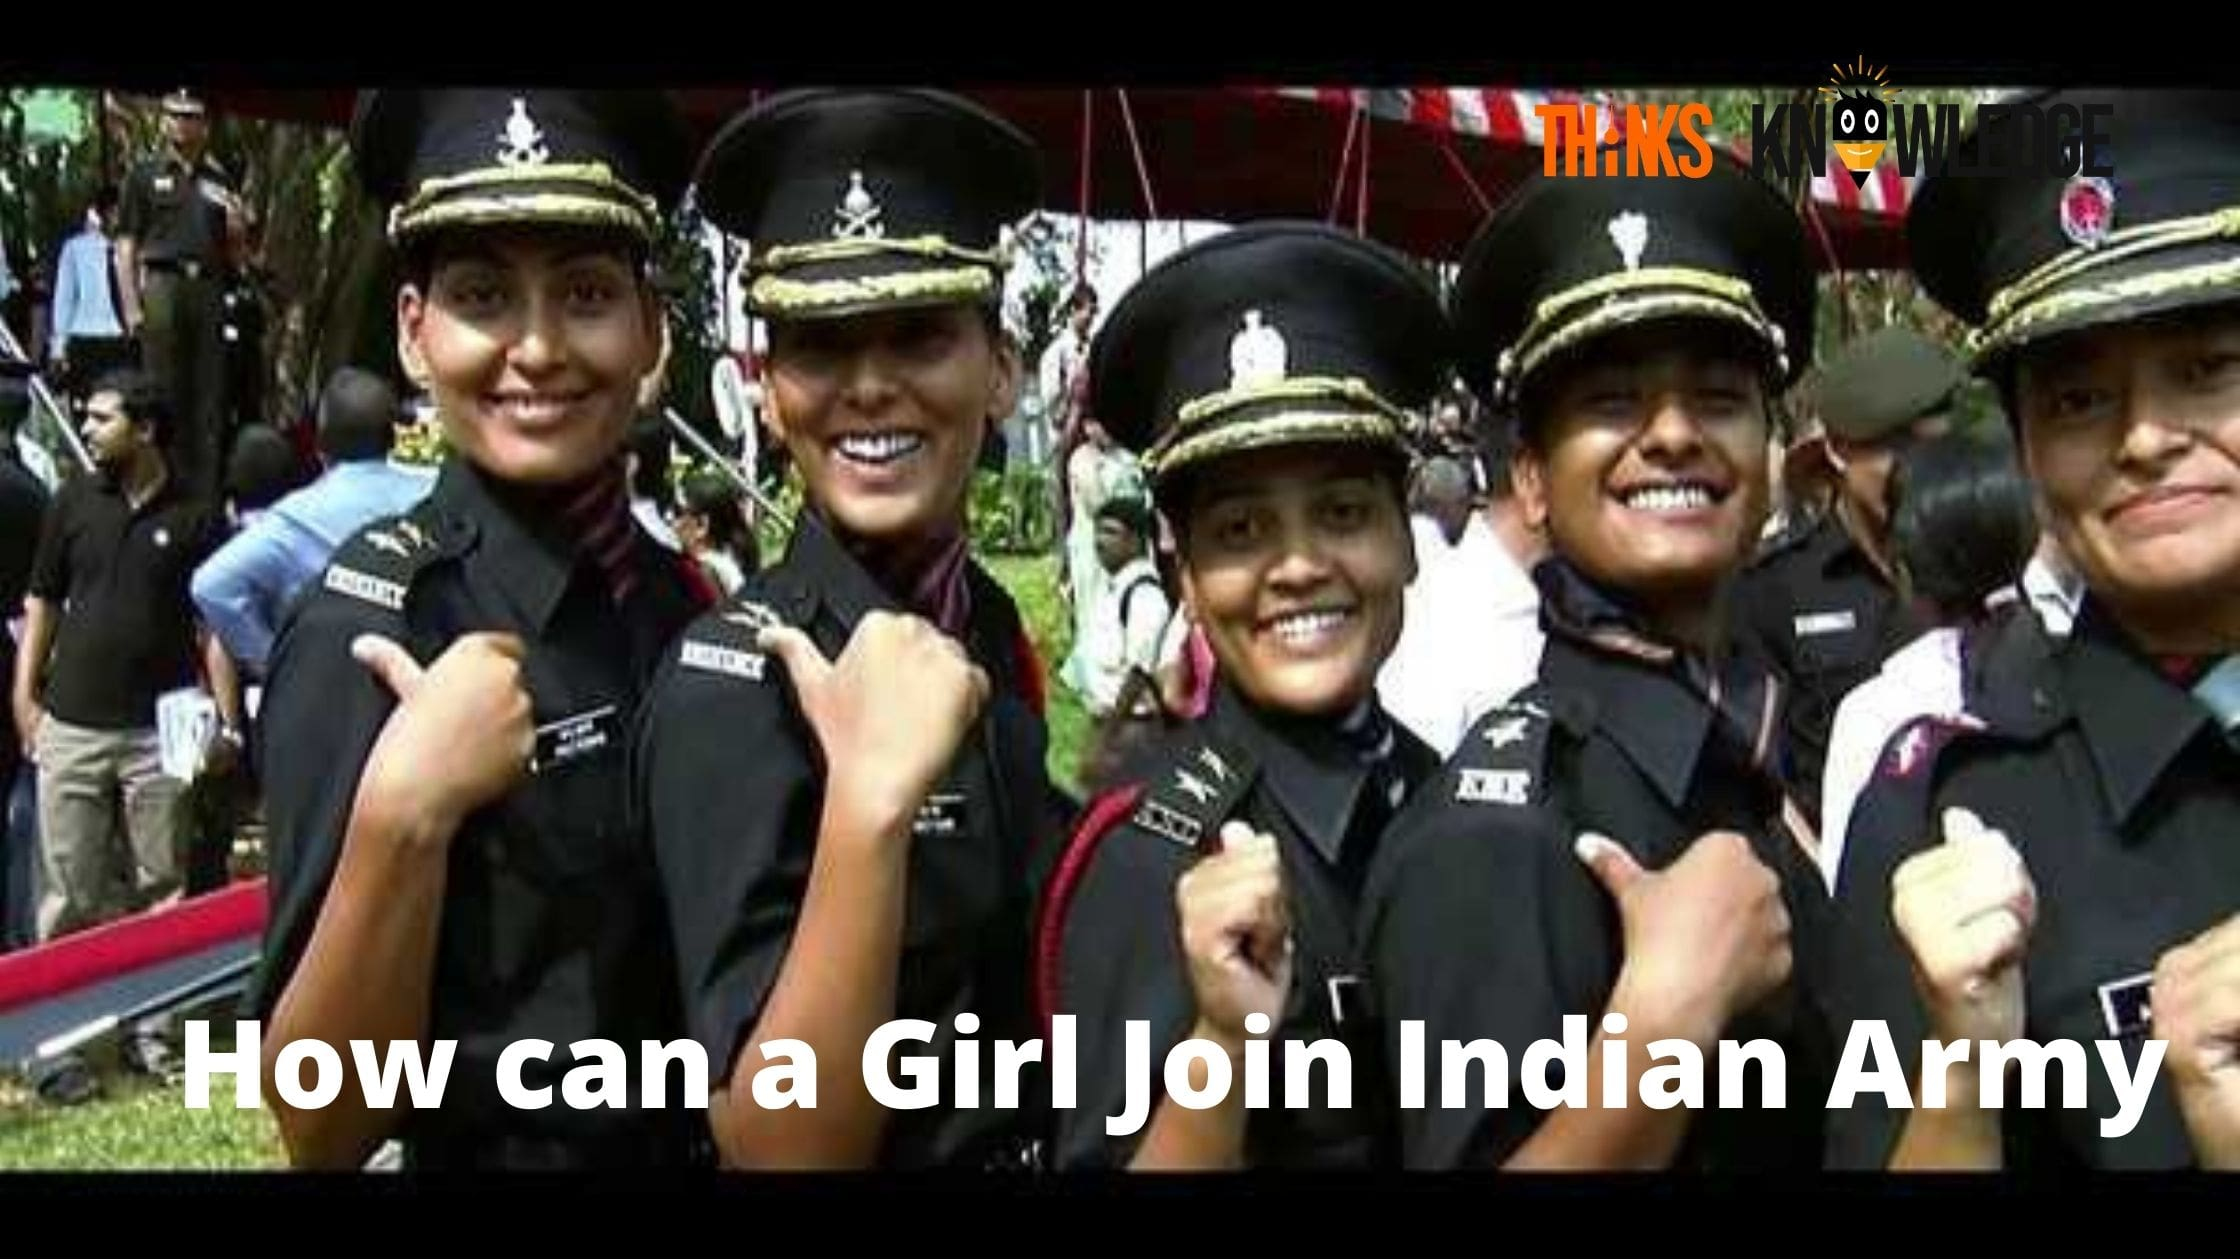 How can a Girl Join Indian Army